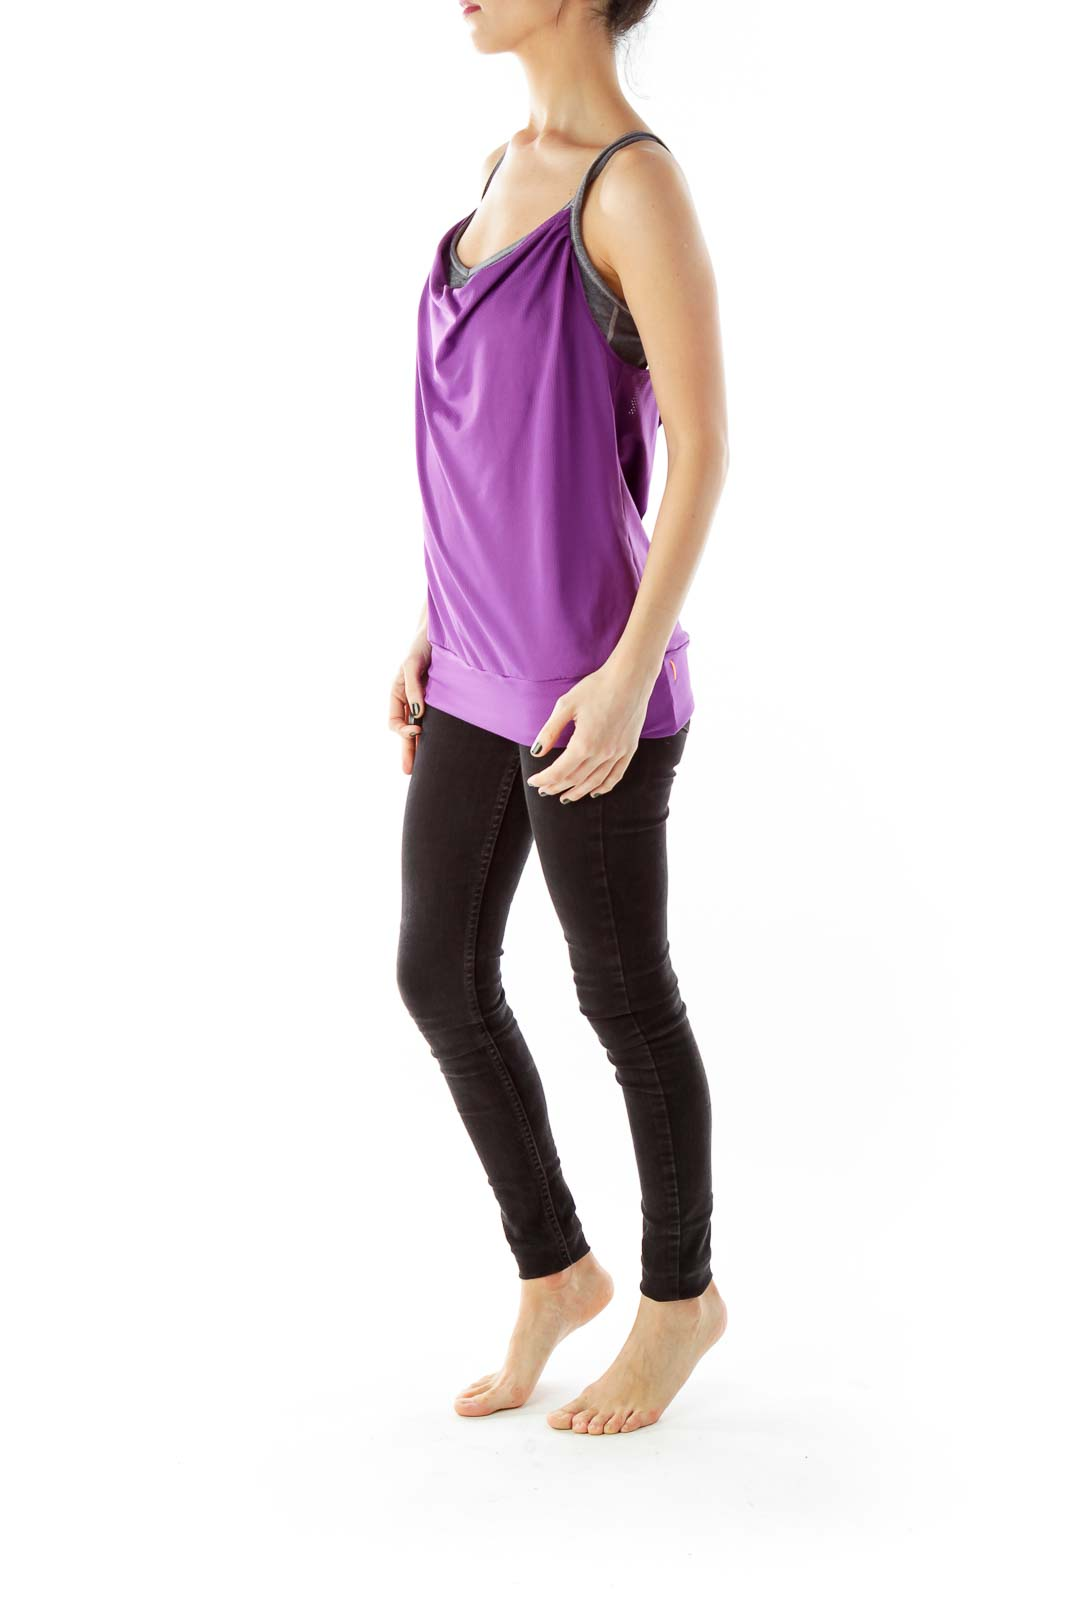 Purple Yoga Top with Sports Bra